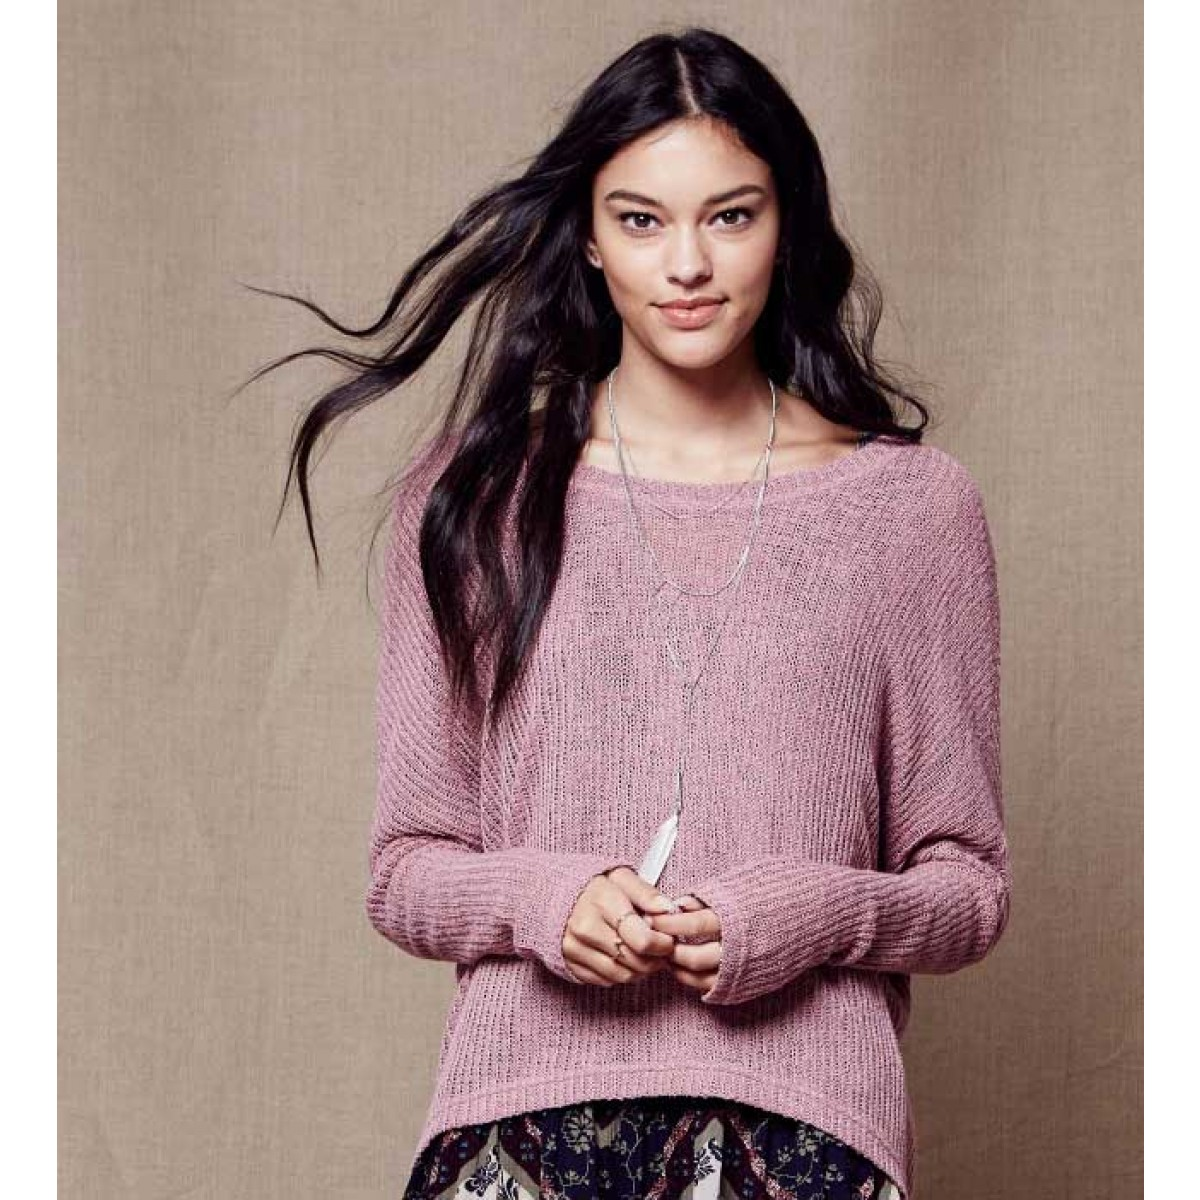 Girly Look Tokyo Darling Sheer Oversized Dolman Sweater from aeropostale